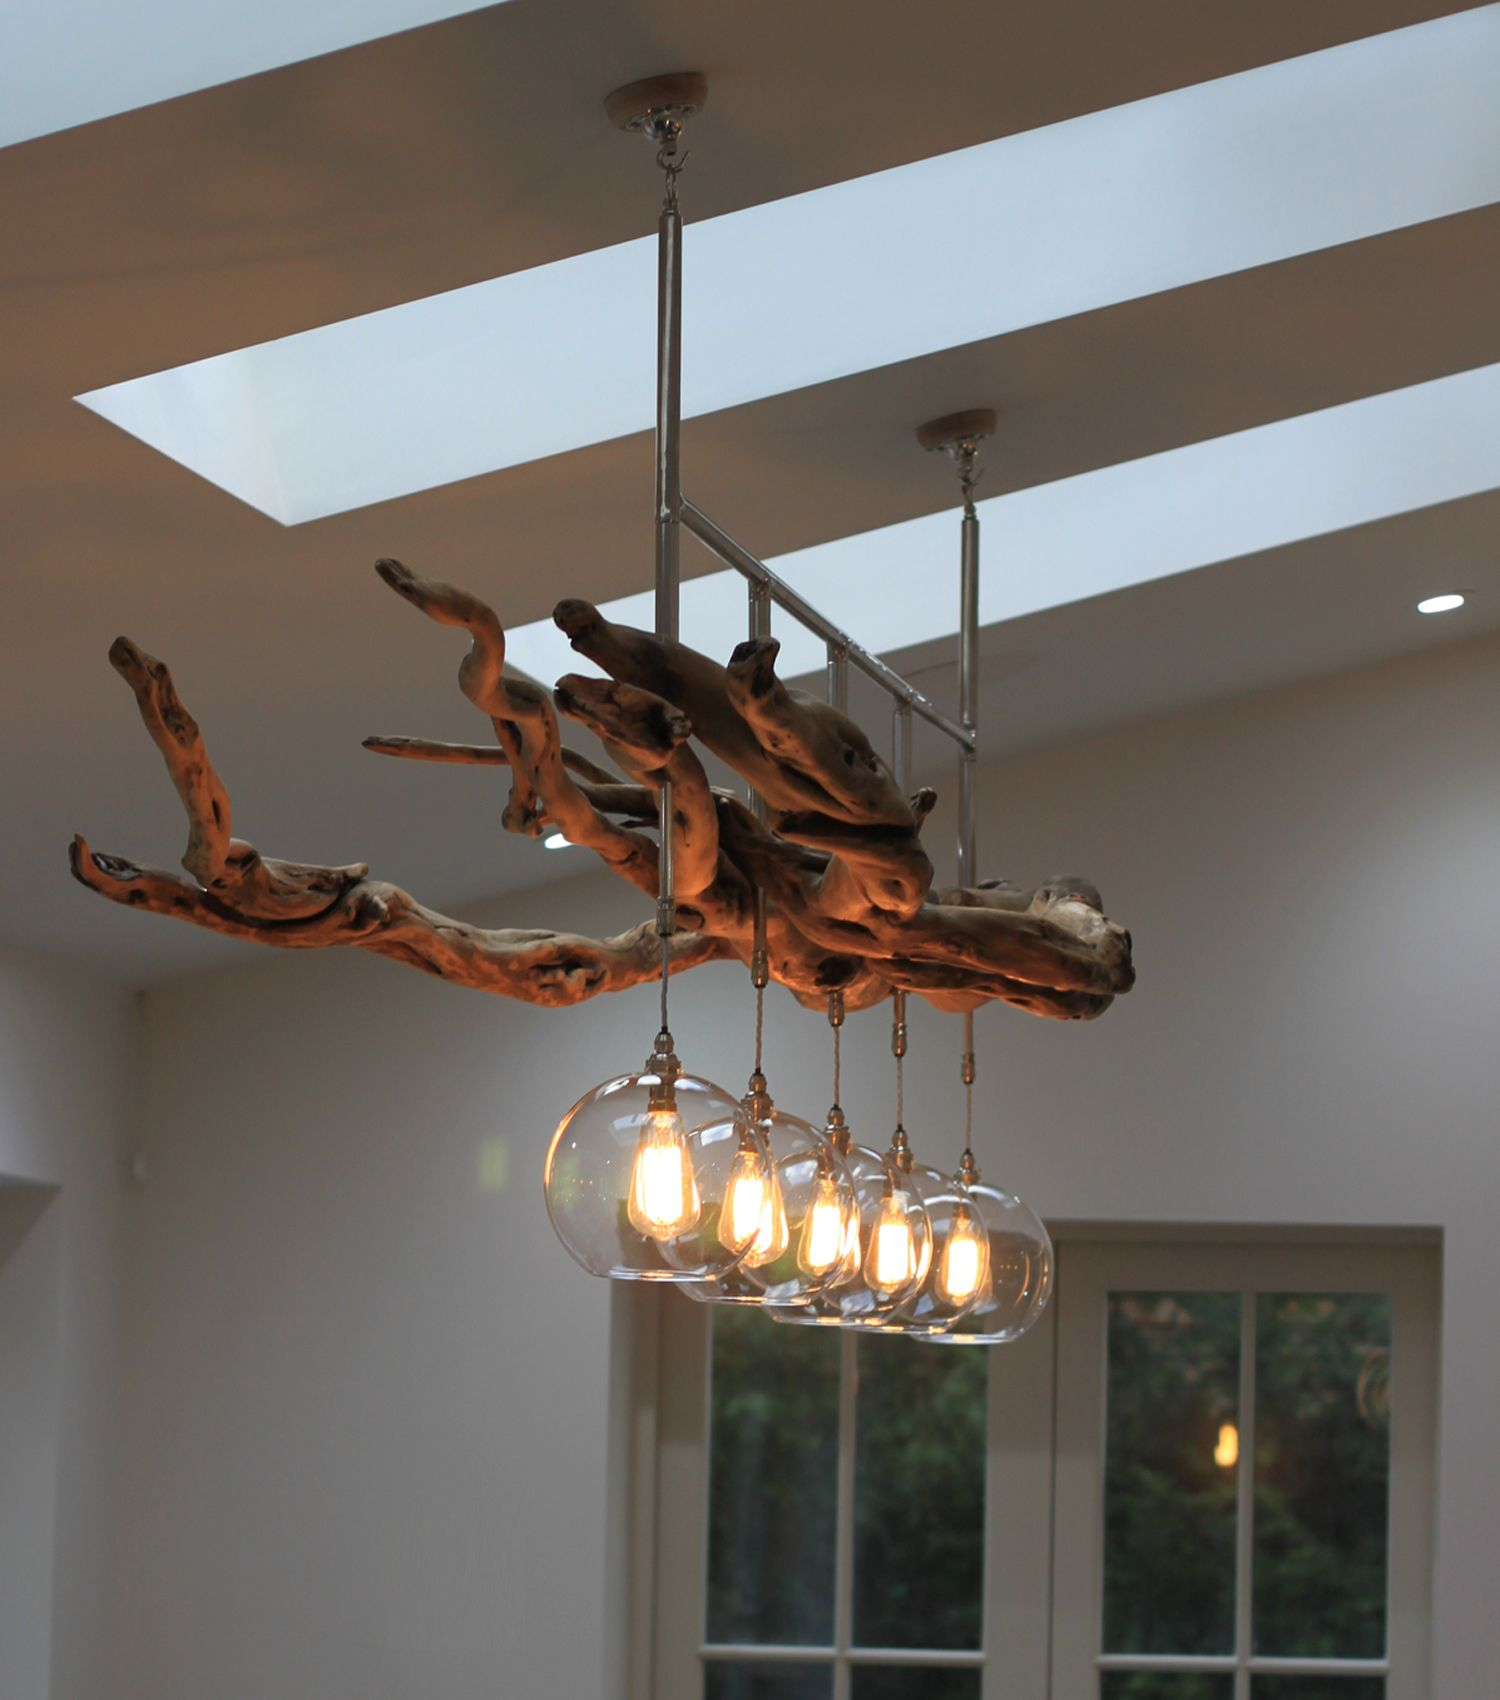 Driftwood Lighting We Quite Frequently Have Requests For Bespoke Lighting Designs But